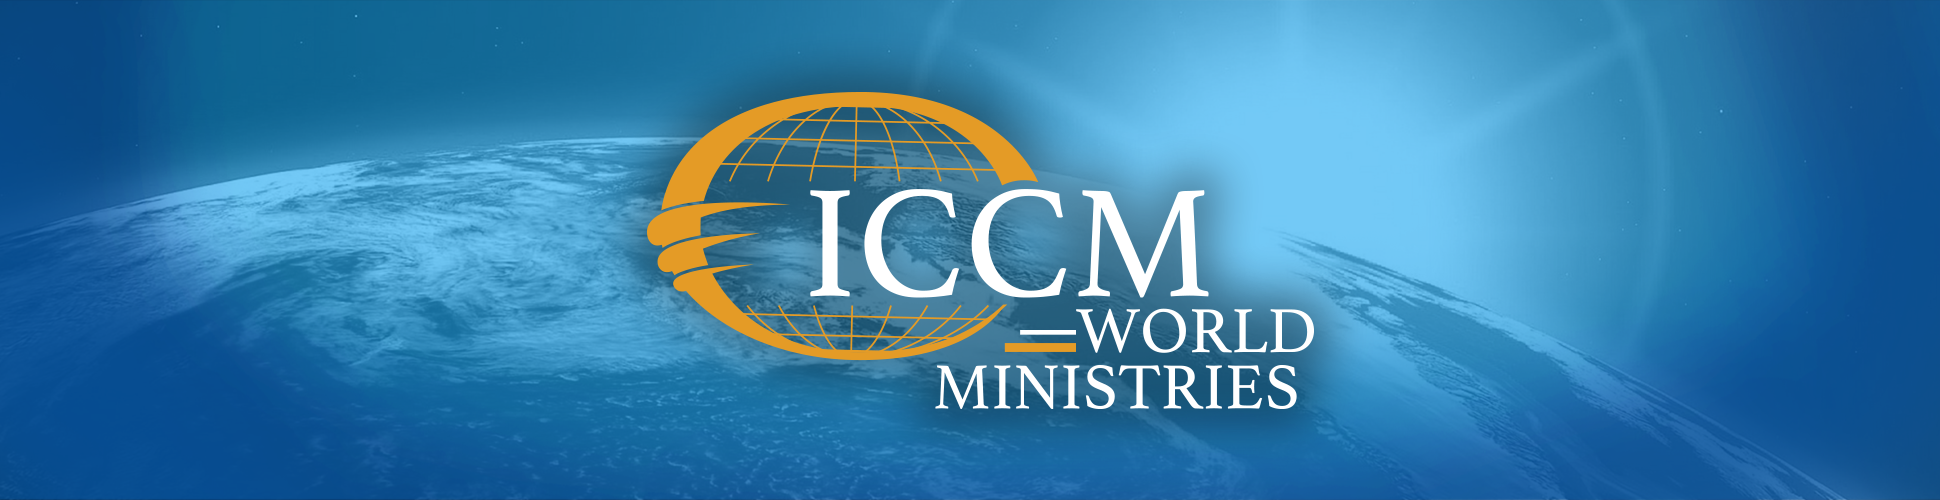 ICCM World Ministries Retina Logo